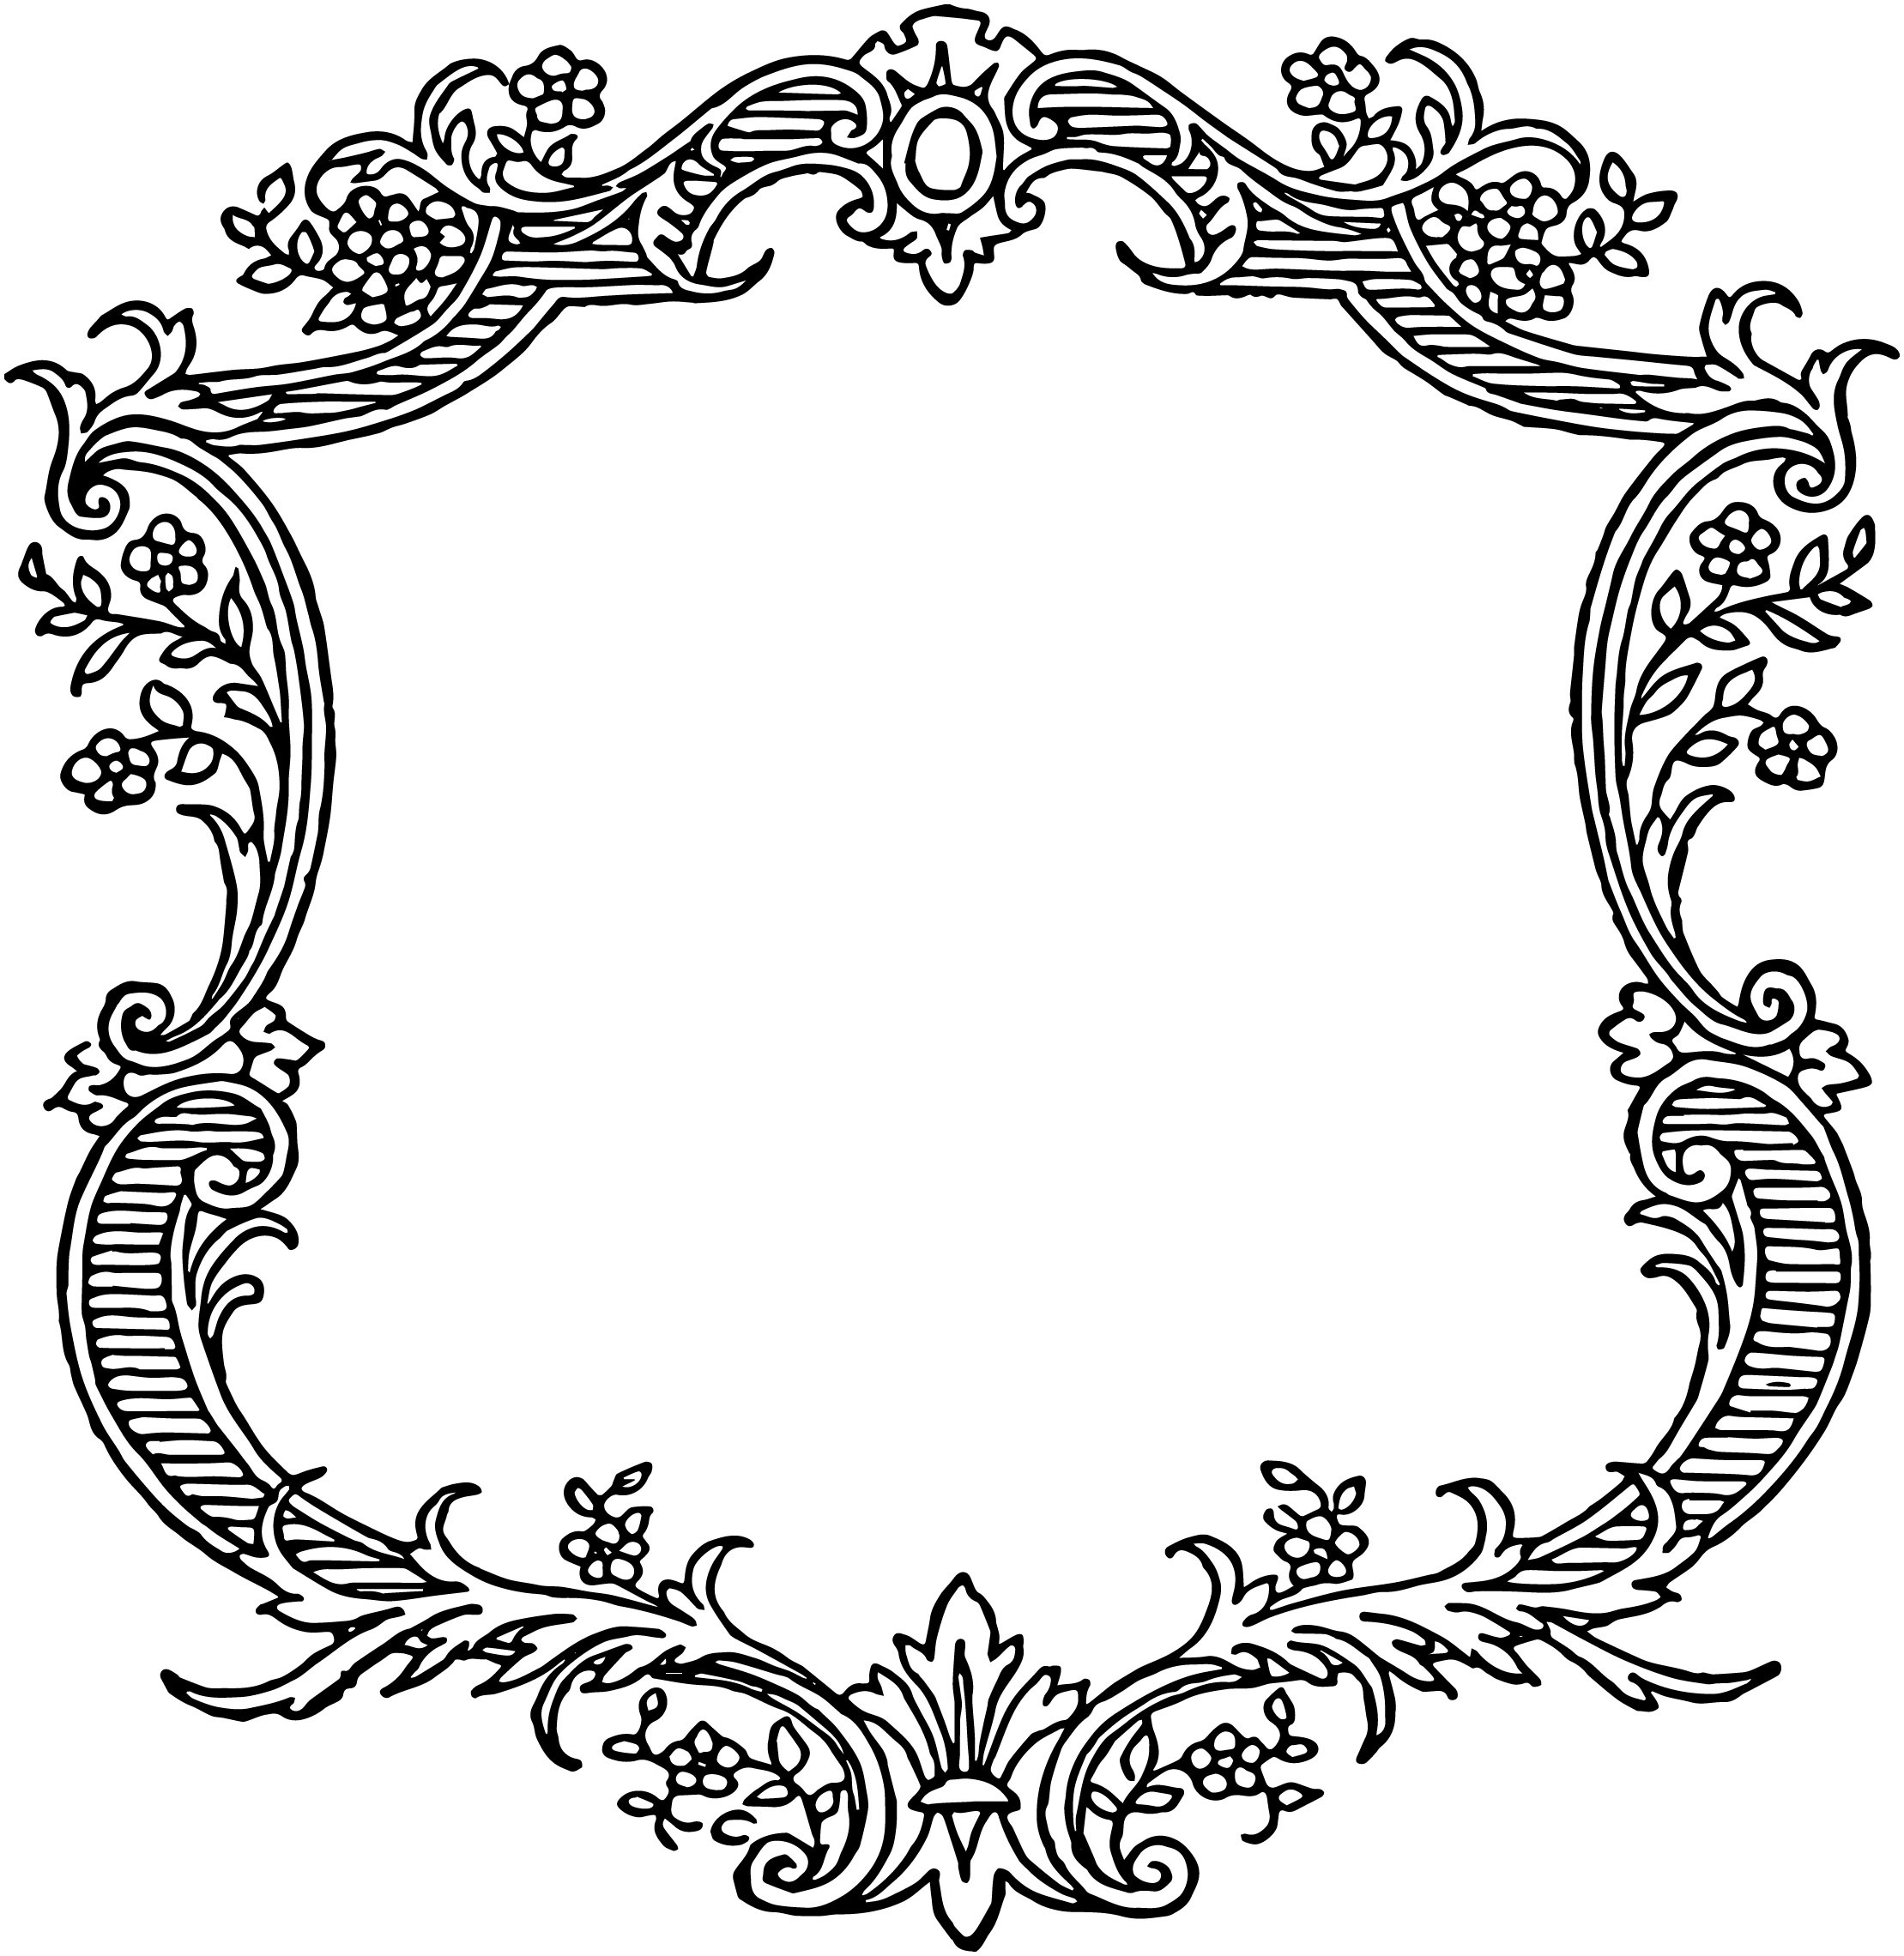 2219x2280 Antique Frame Drawing At Getdrawings Free For Personal Use